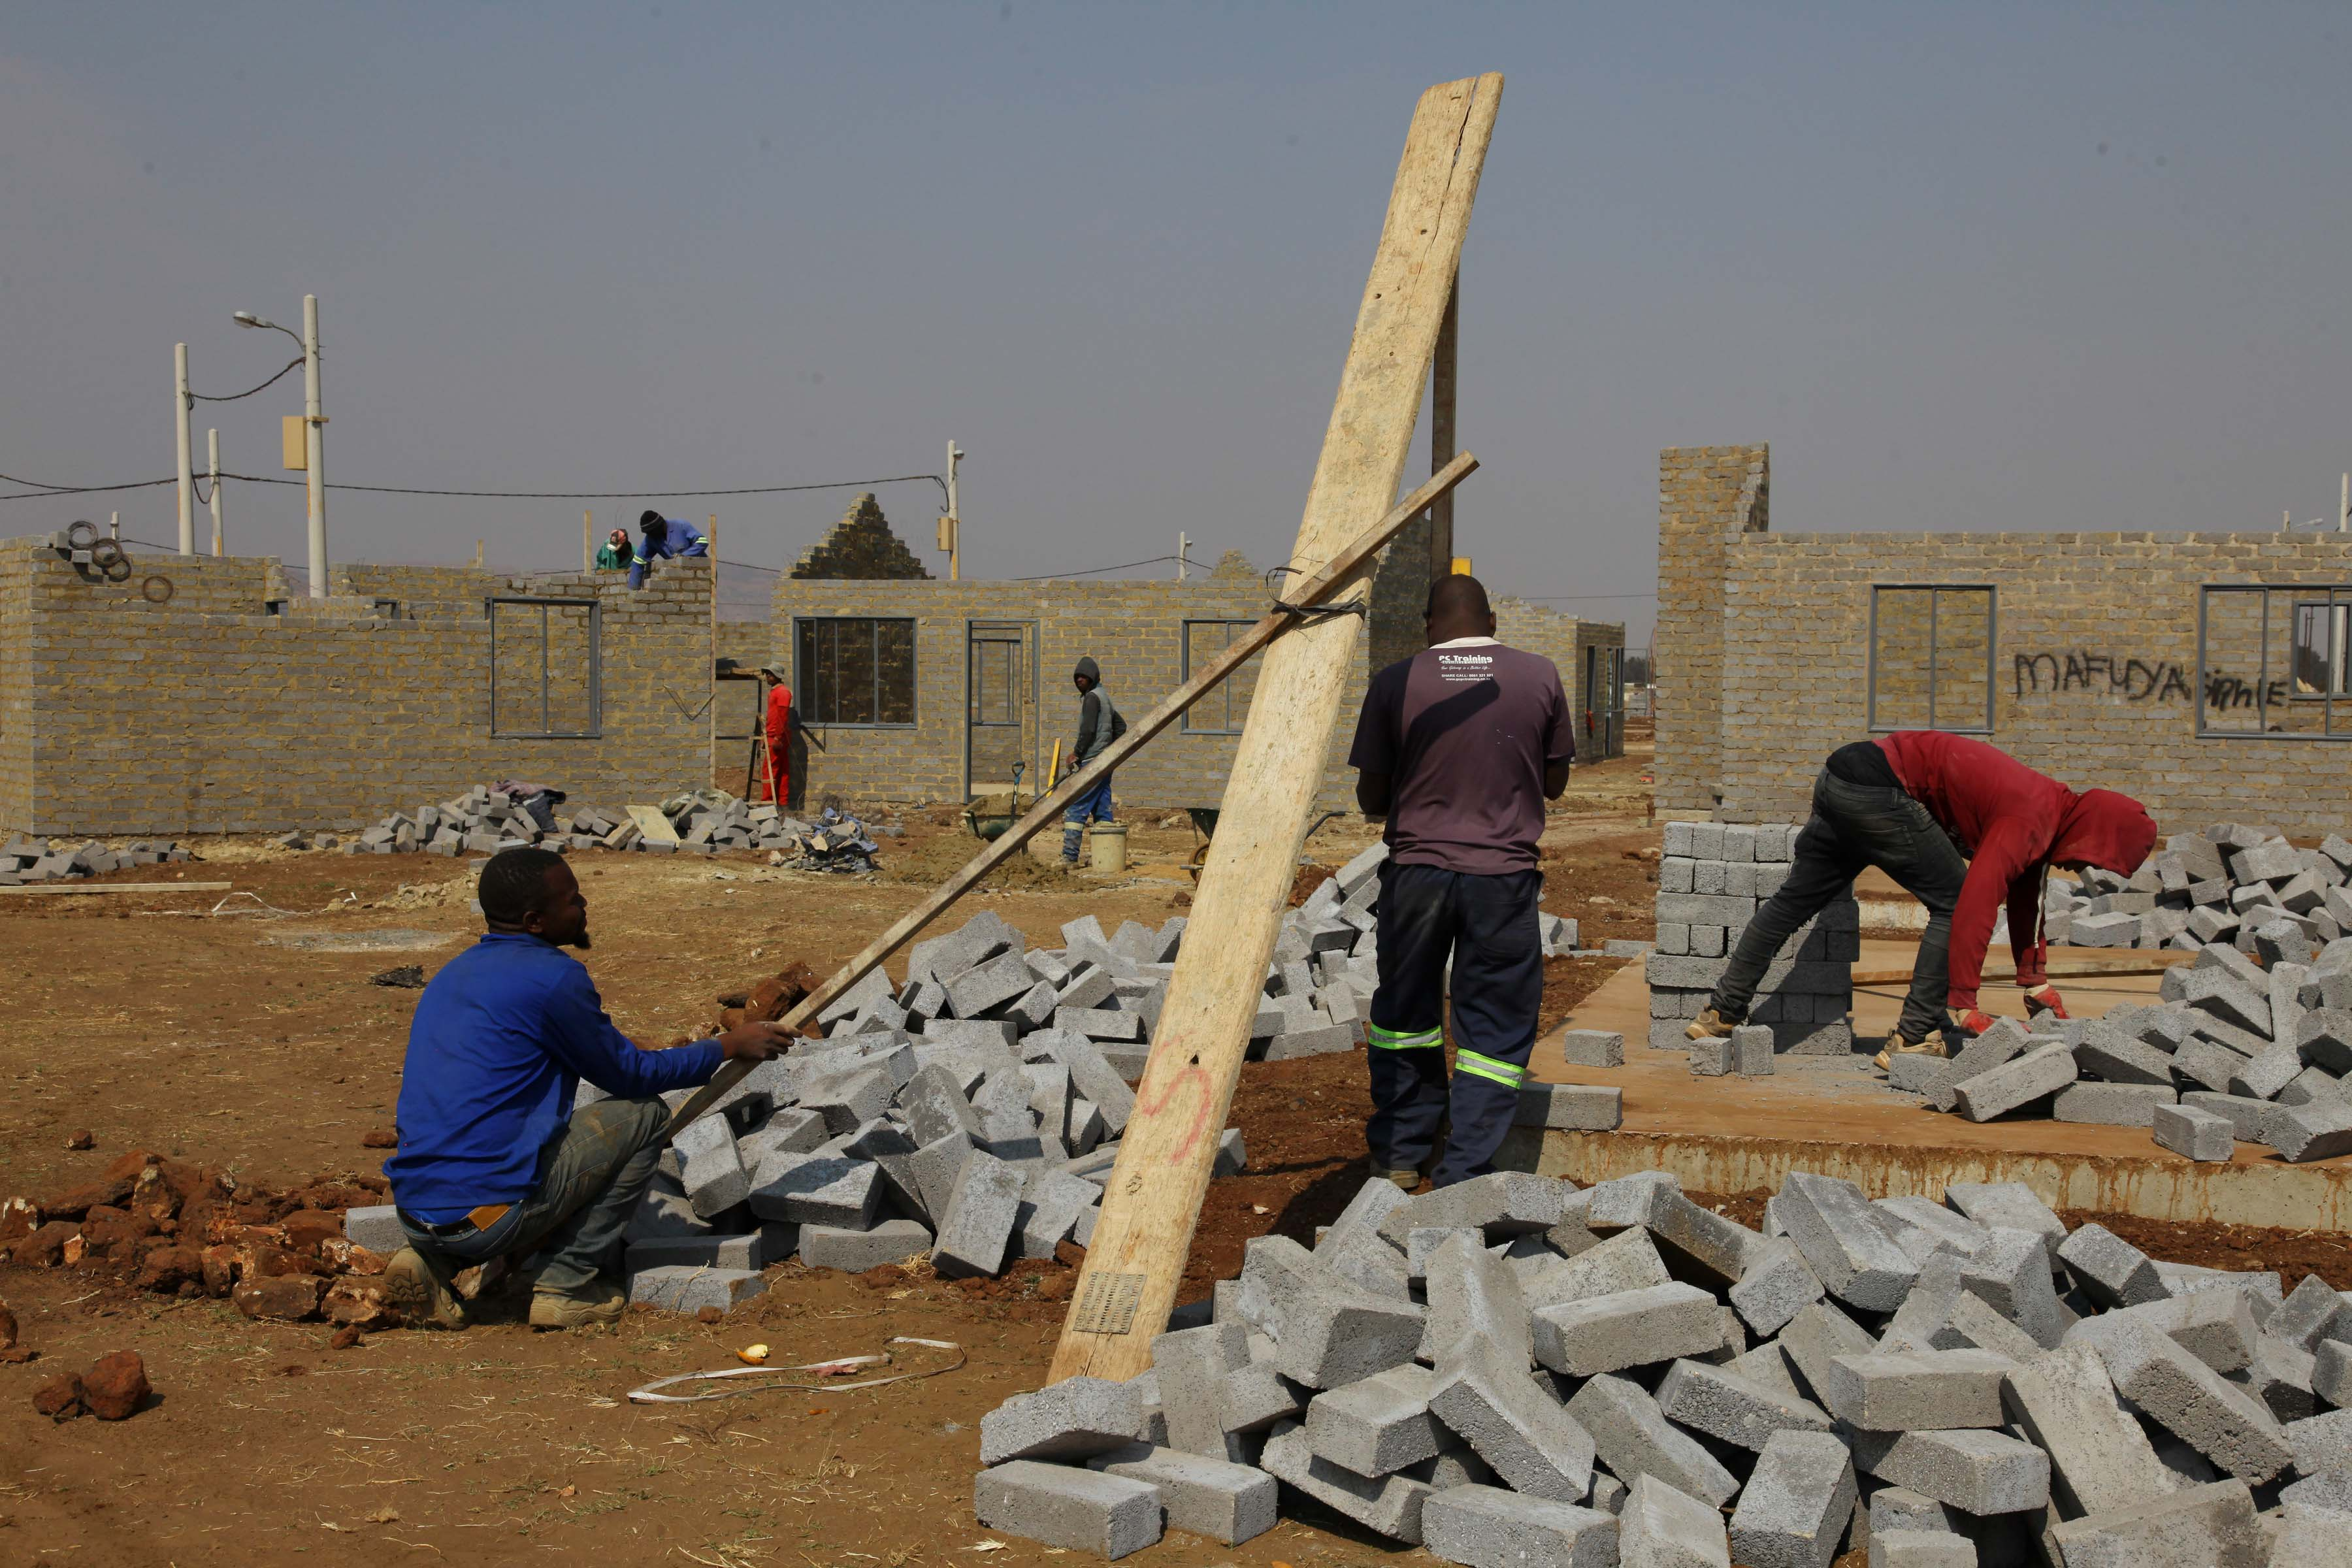 08 August 2019: Workers prepare bricks on a construction site reserved to build RDP houses for MK veterans at Palm Ridge.